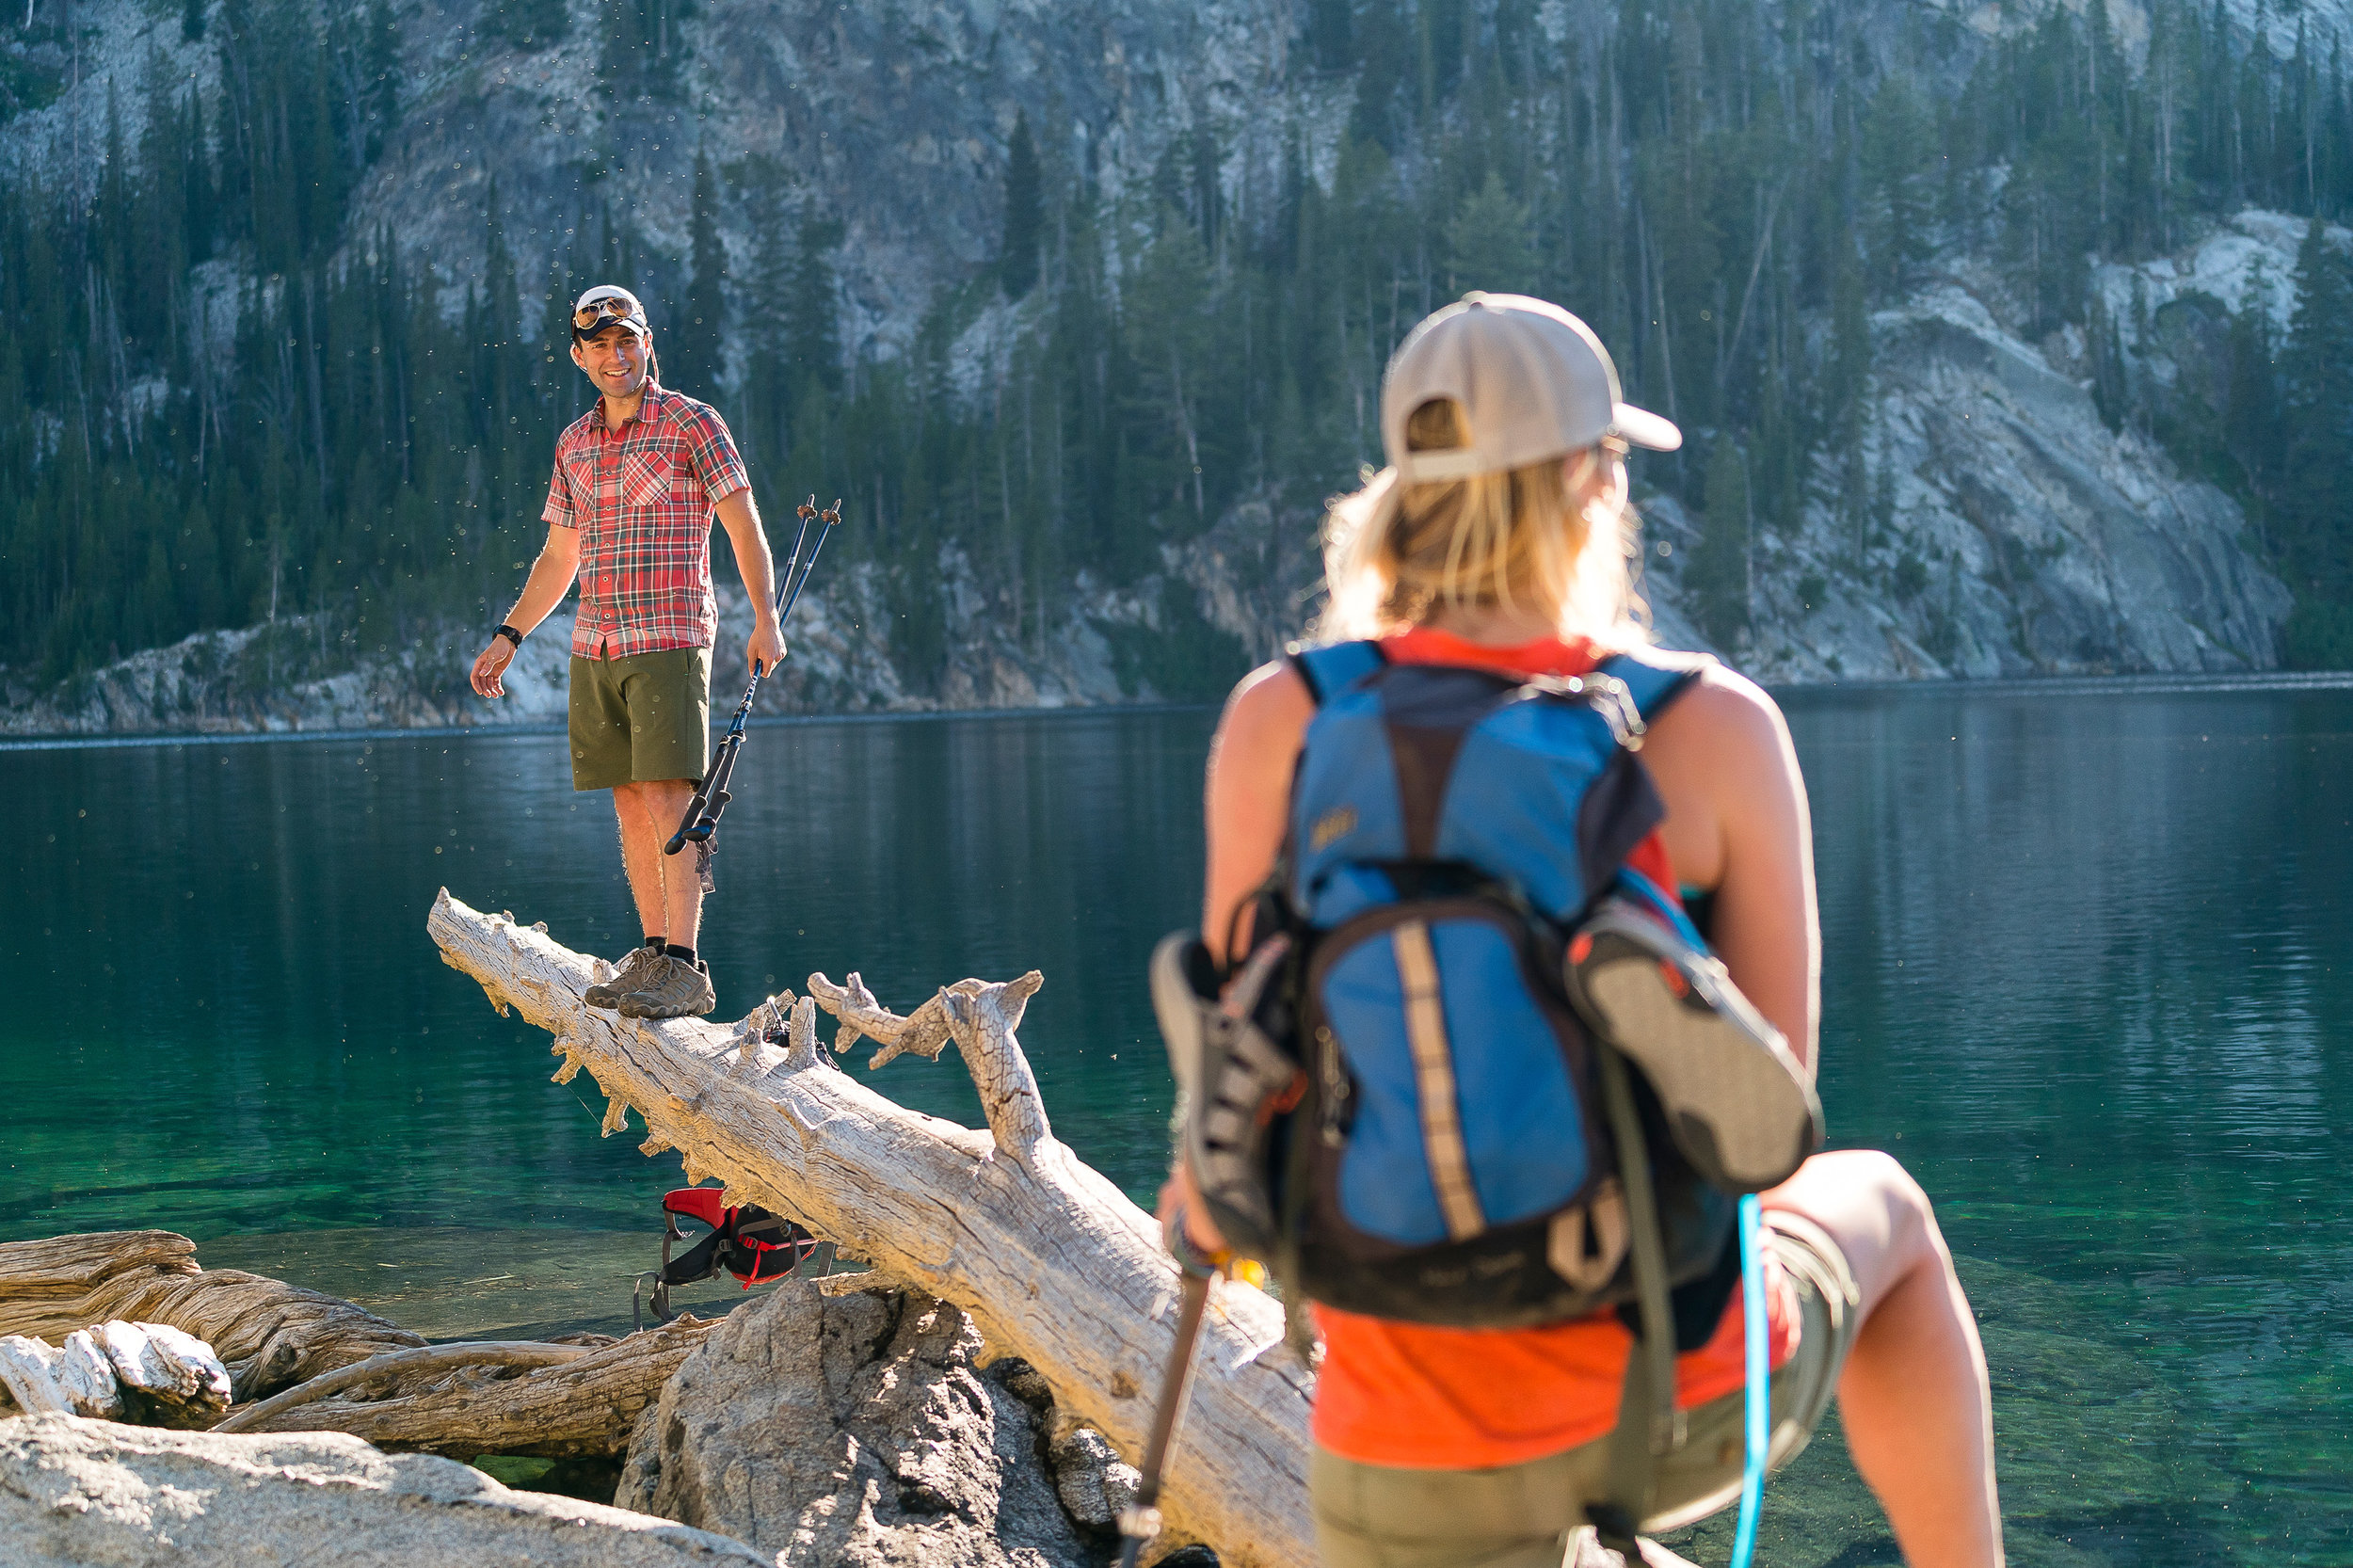 matera_outdoor_lifestyle_Idaho_Ketchum_hiking_DSC3685.jpg